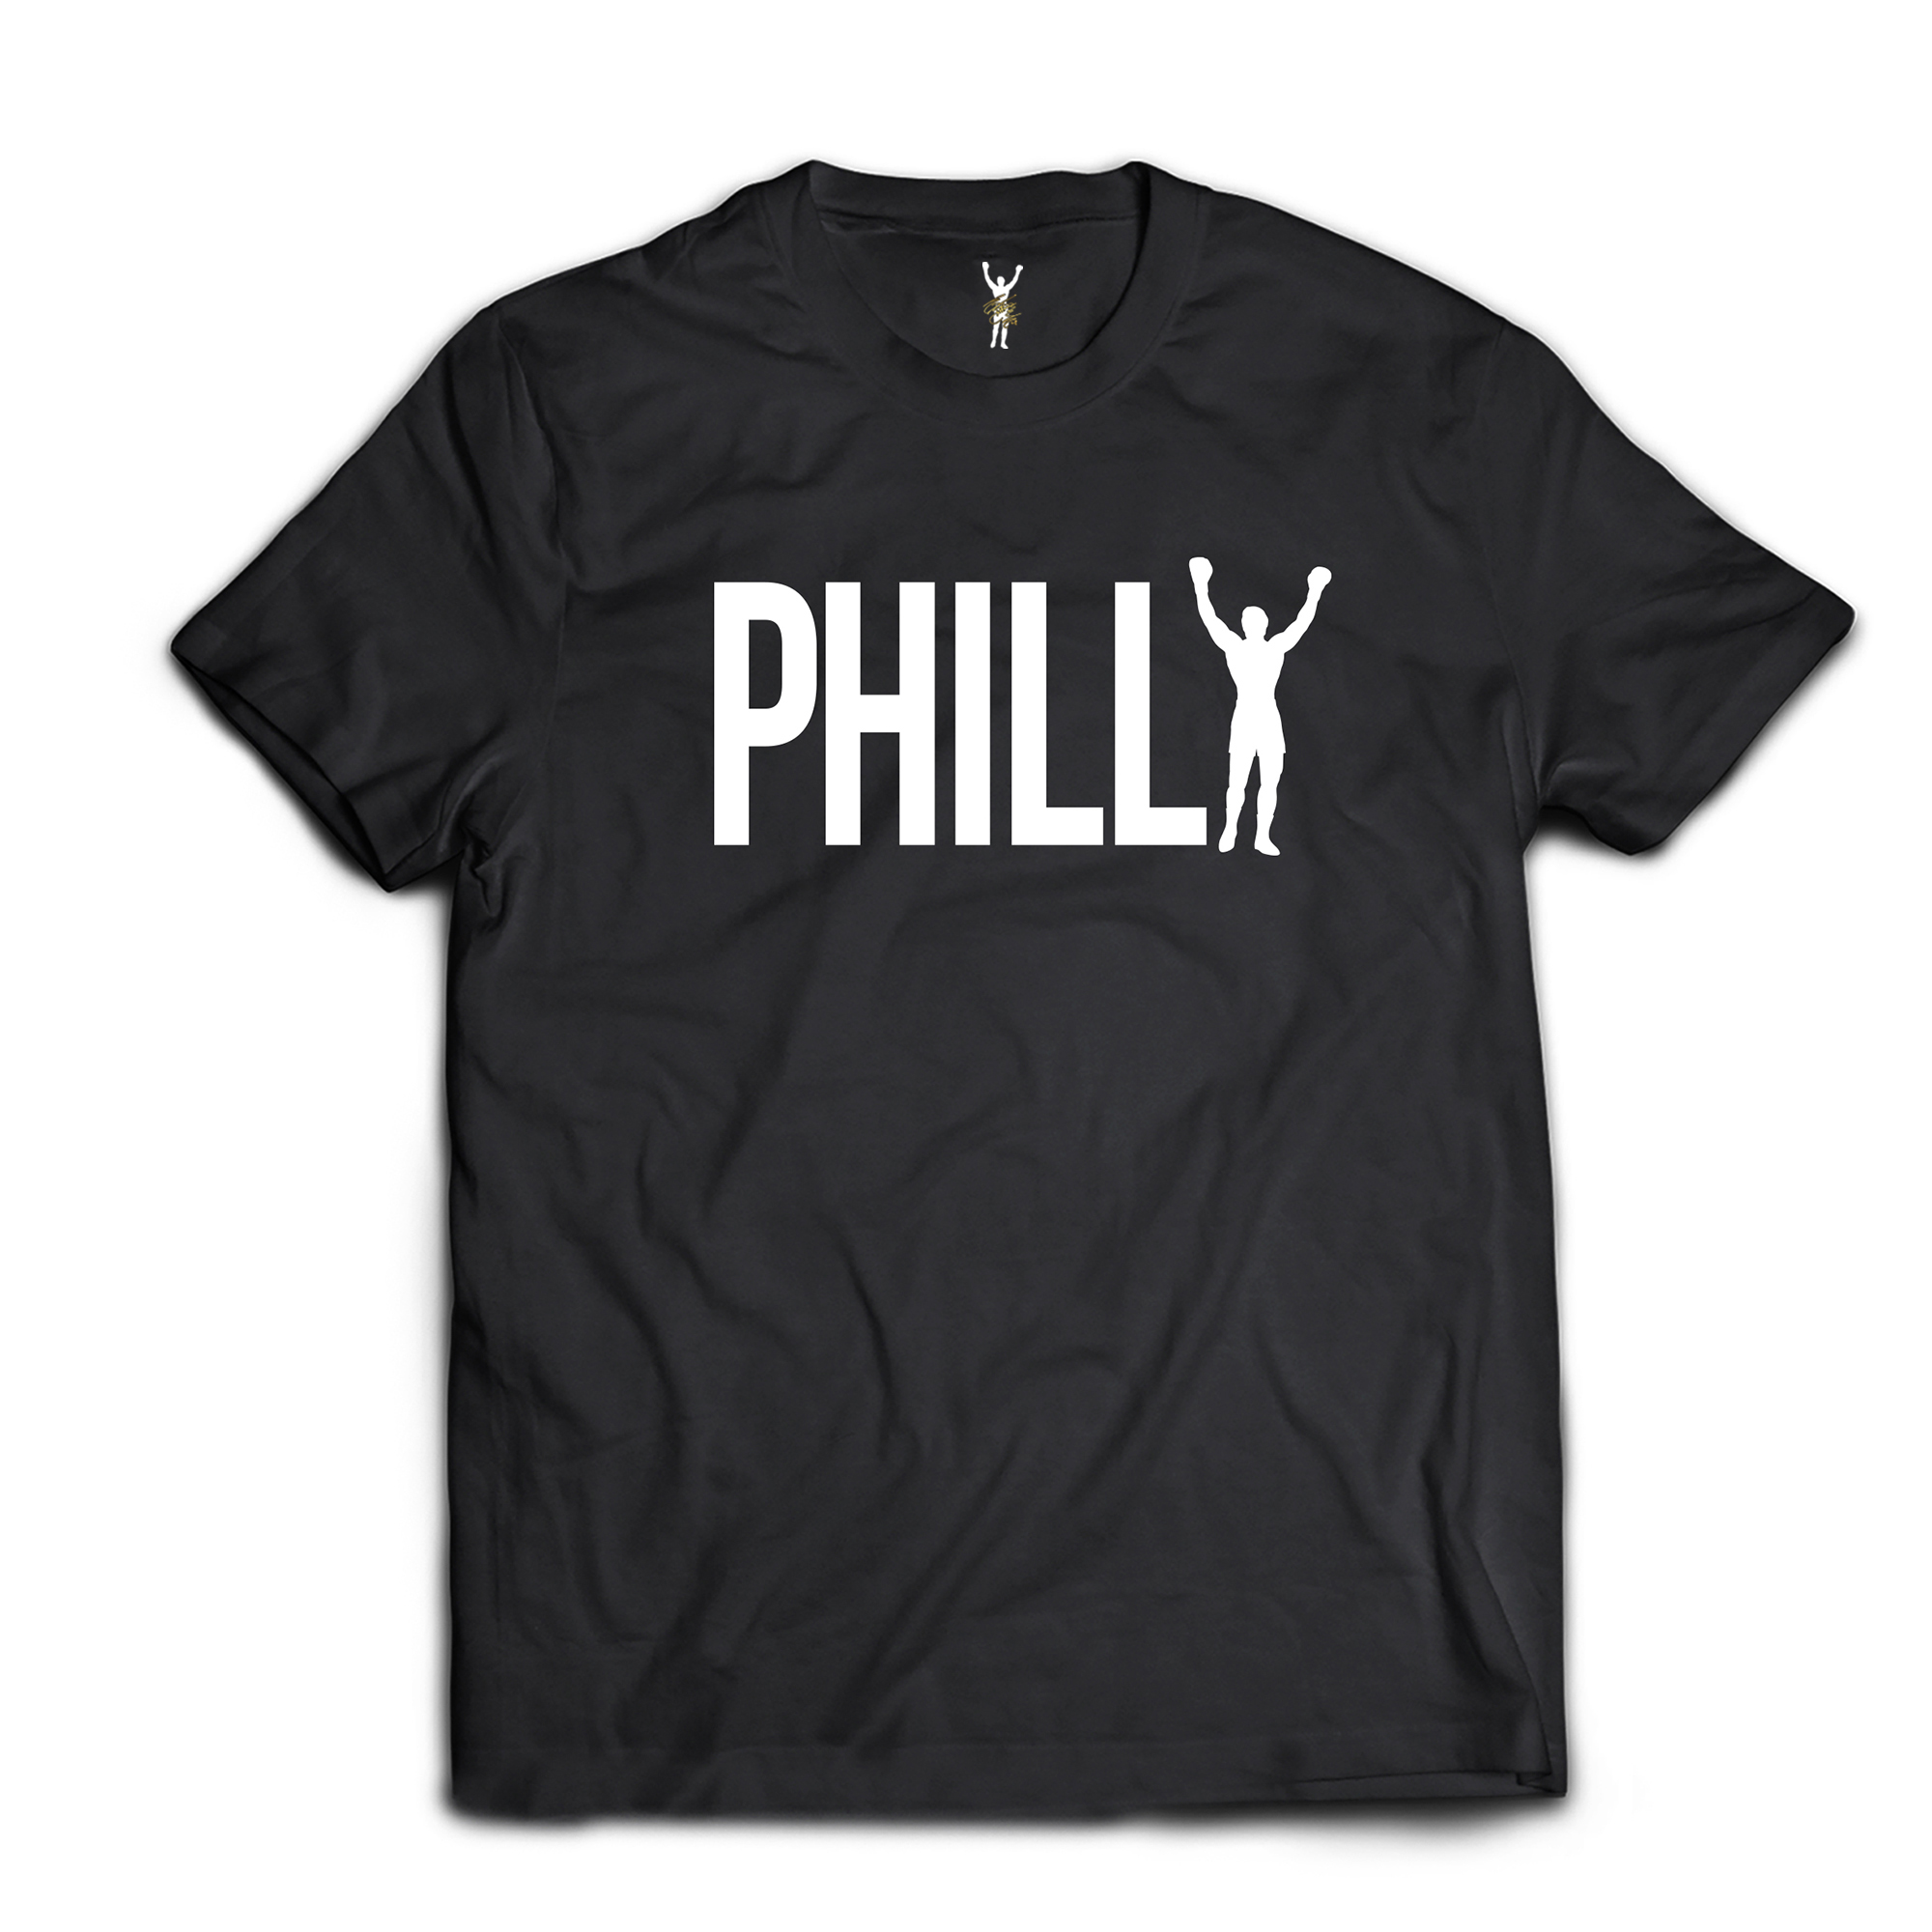 PHILLY Victory Tee